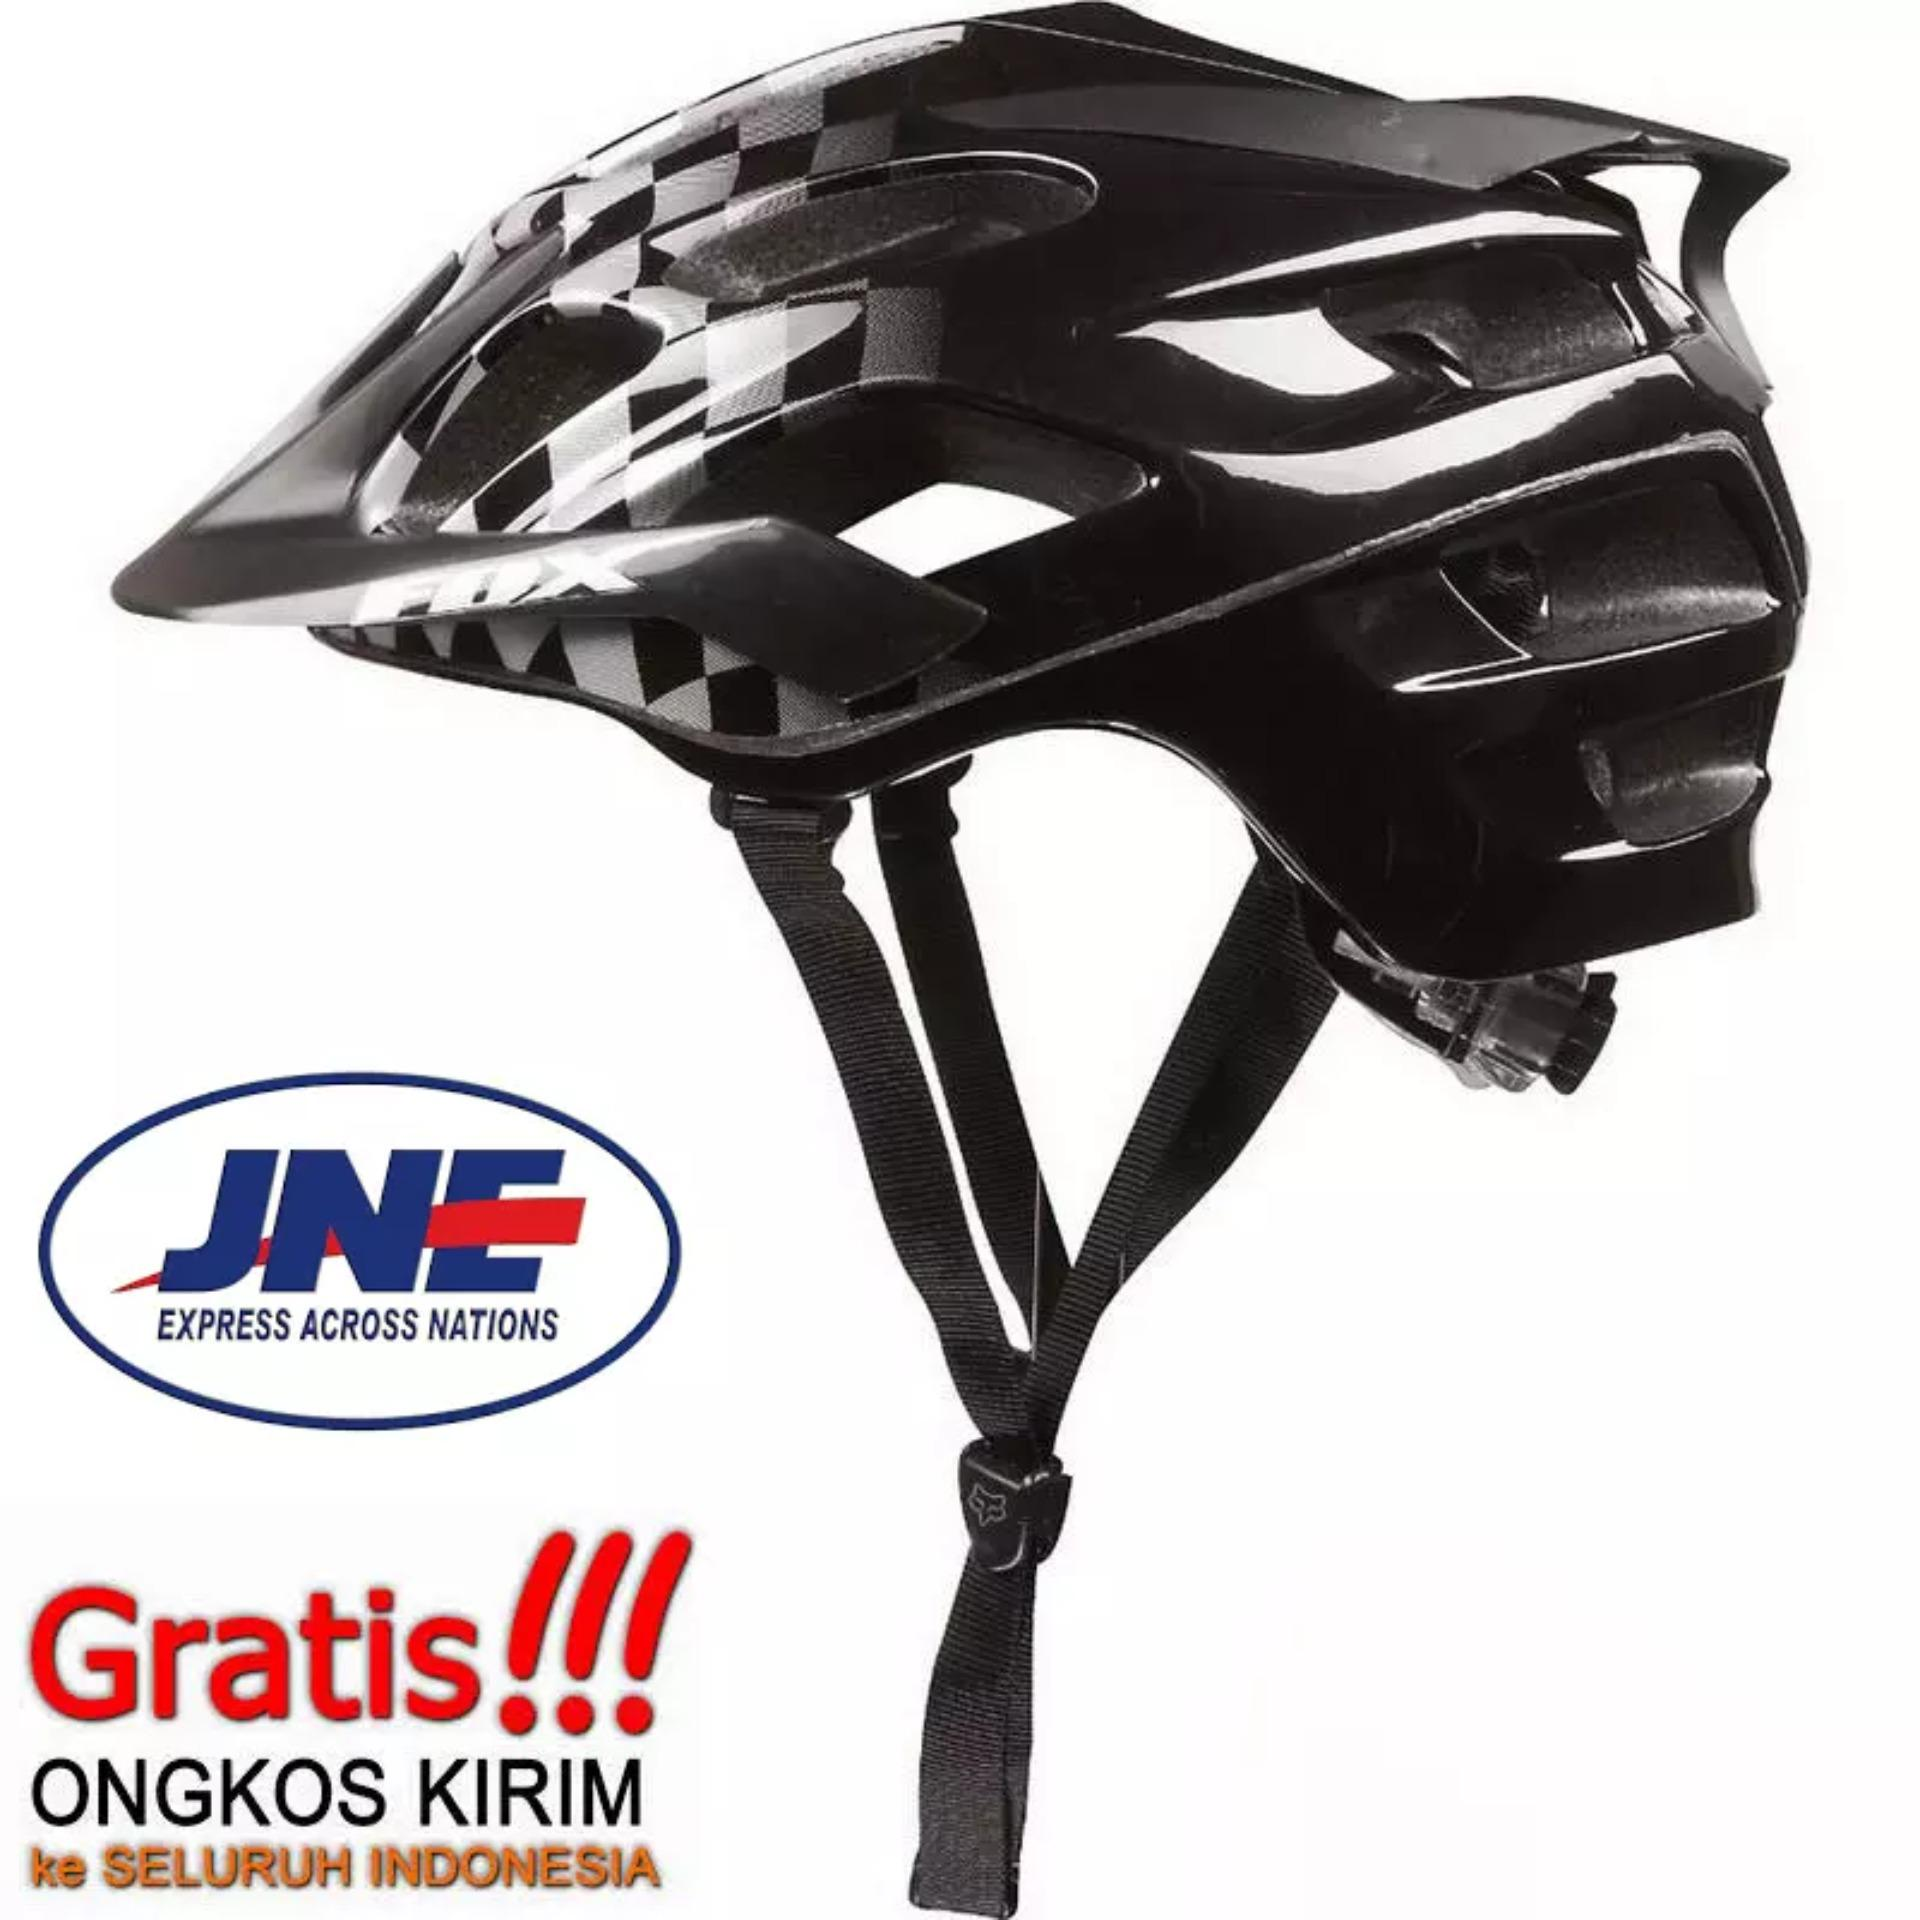 Eps Cycling Helmet Foam Pvc Shell X10 Helm Sepeda Black Review Bmx Dj Mxl Mexel Batok Source Fox Flux